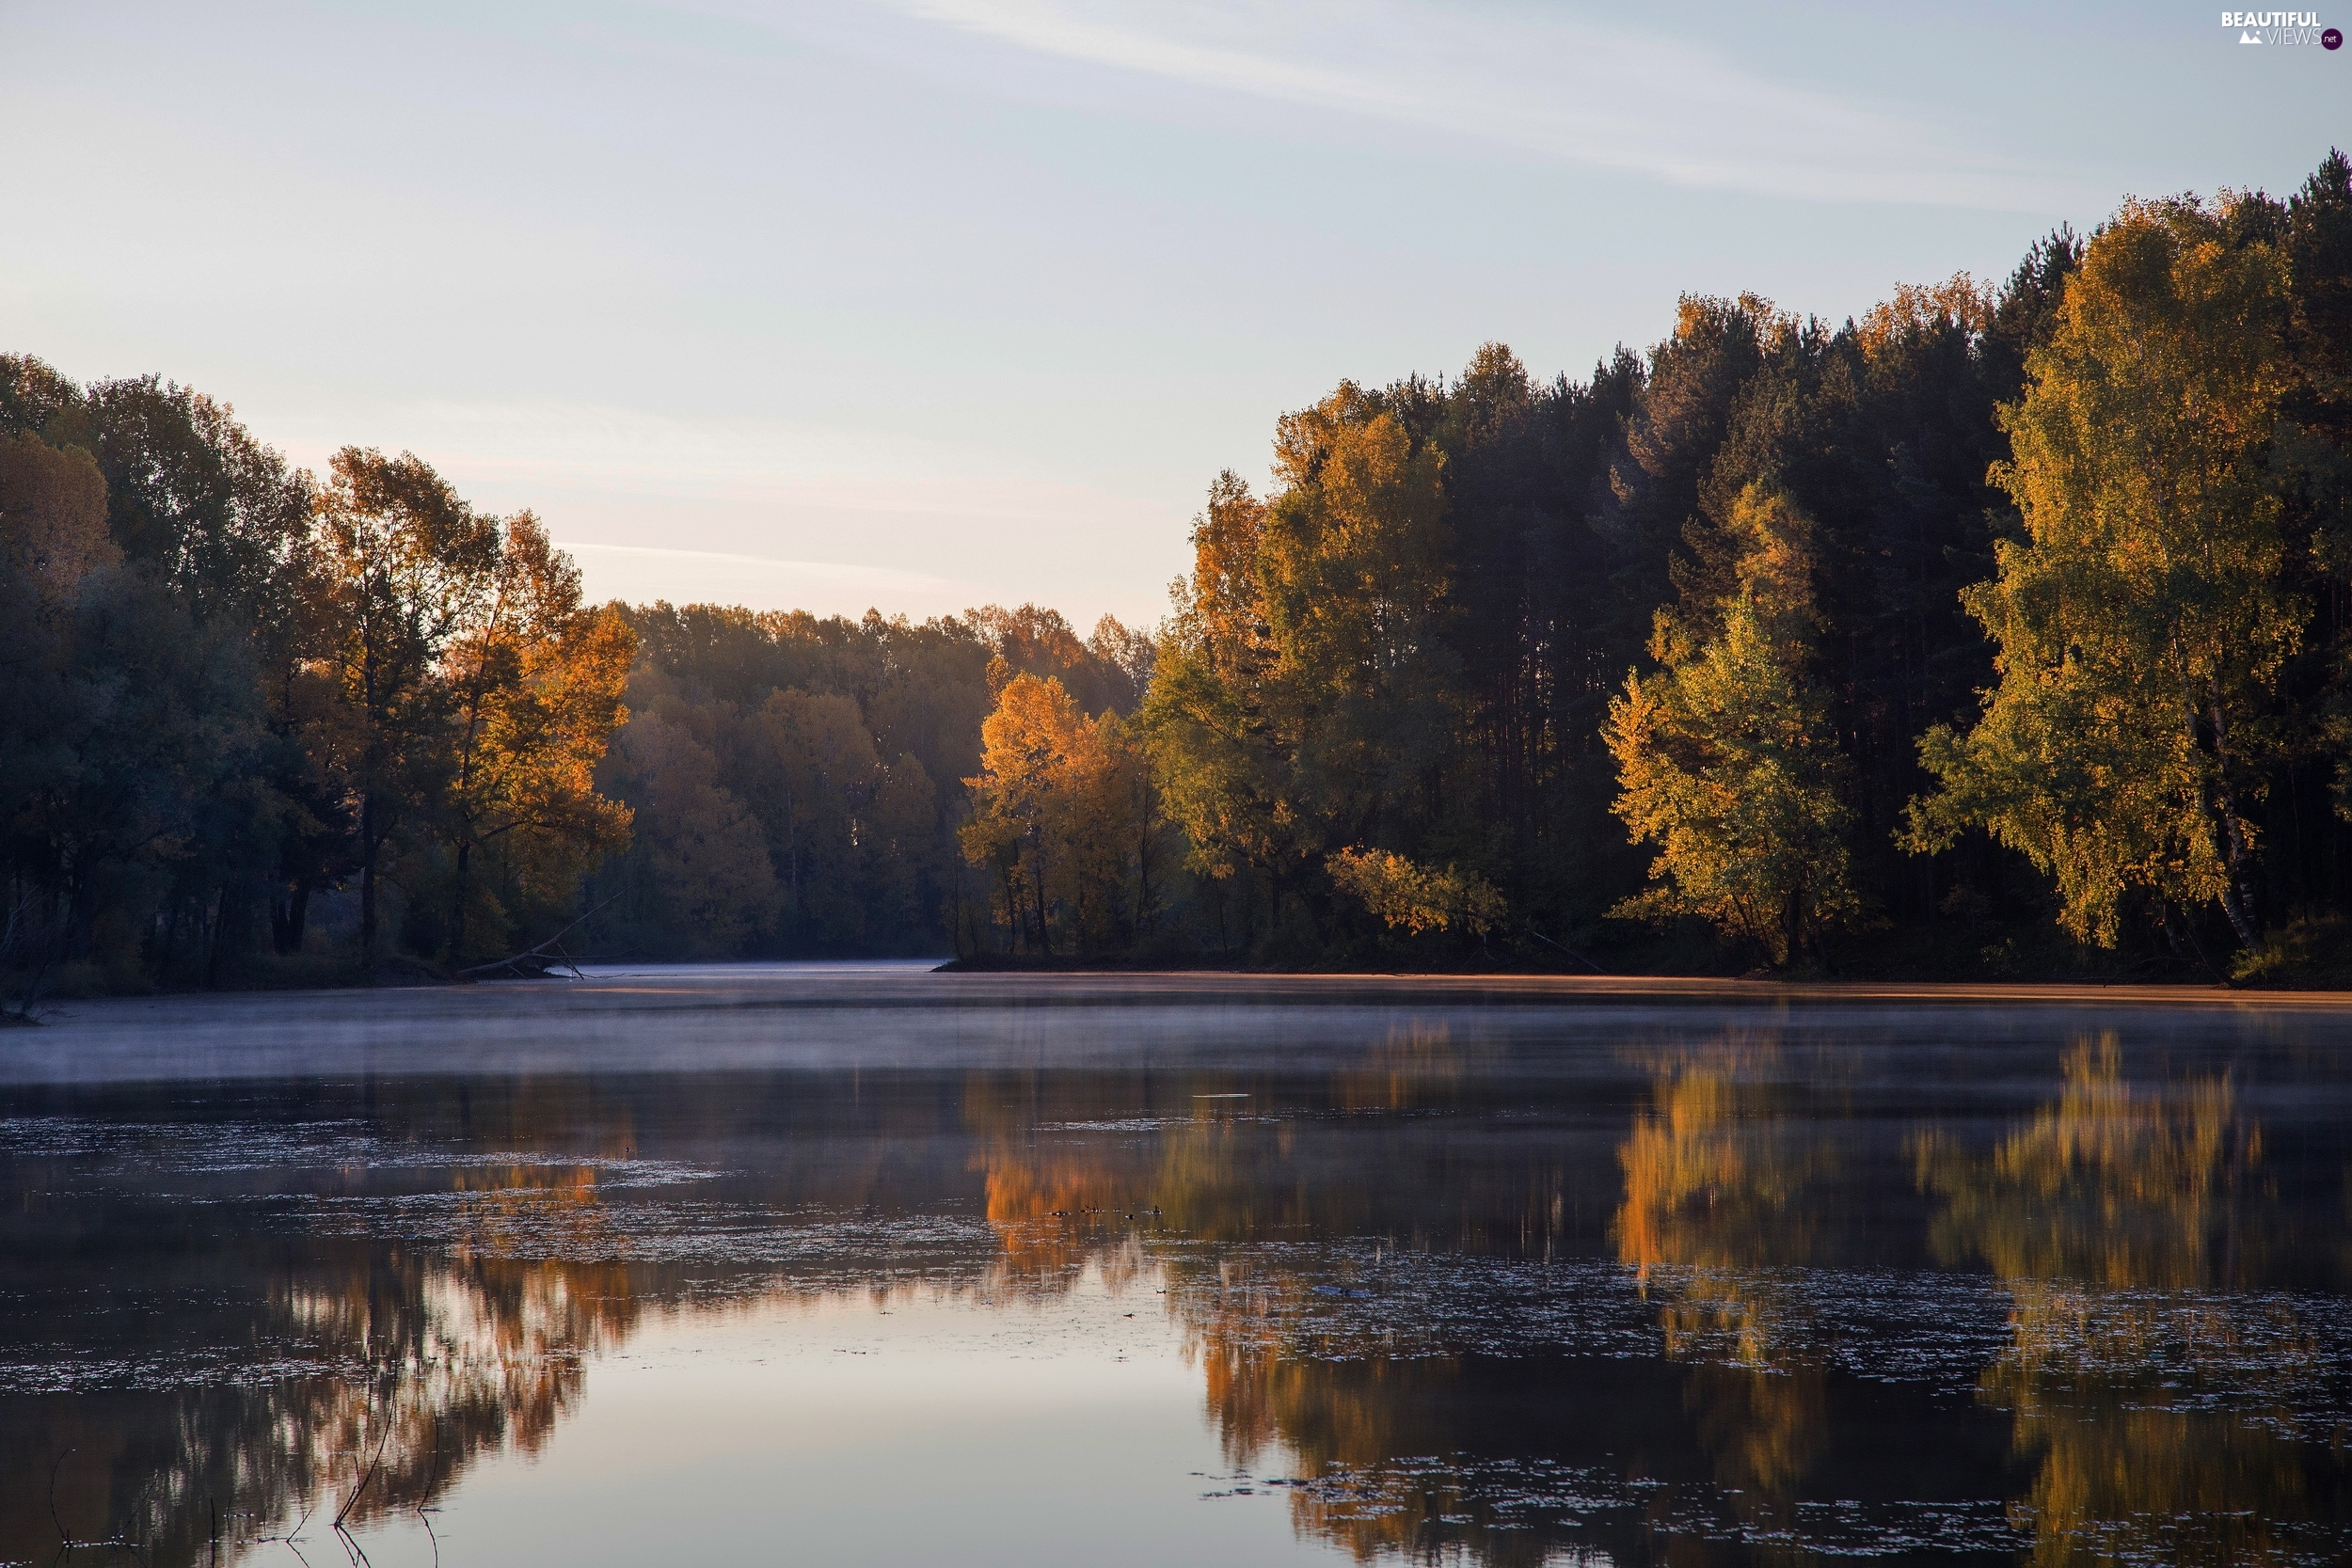 viewes, lake, forest, trees, autumn